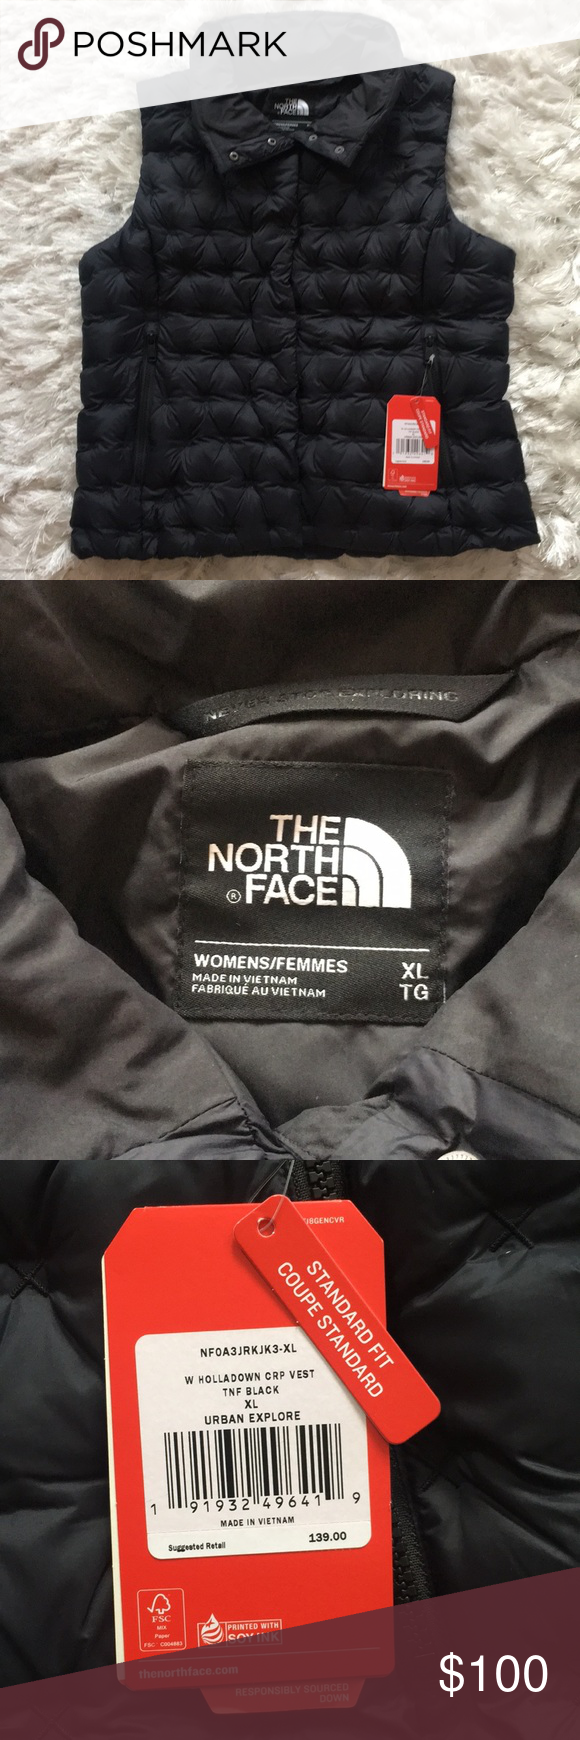 Nwt The North Face Womens Xl Down Puffer Vest North Face Women North Face Jacket The North Face [ 1740 x 580 Pixel ]